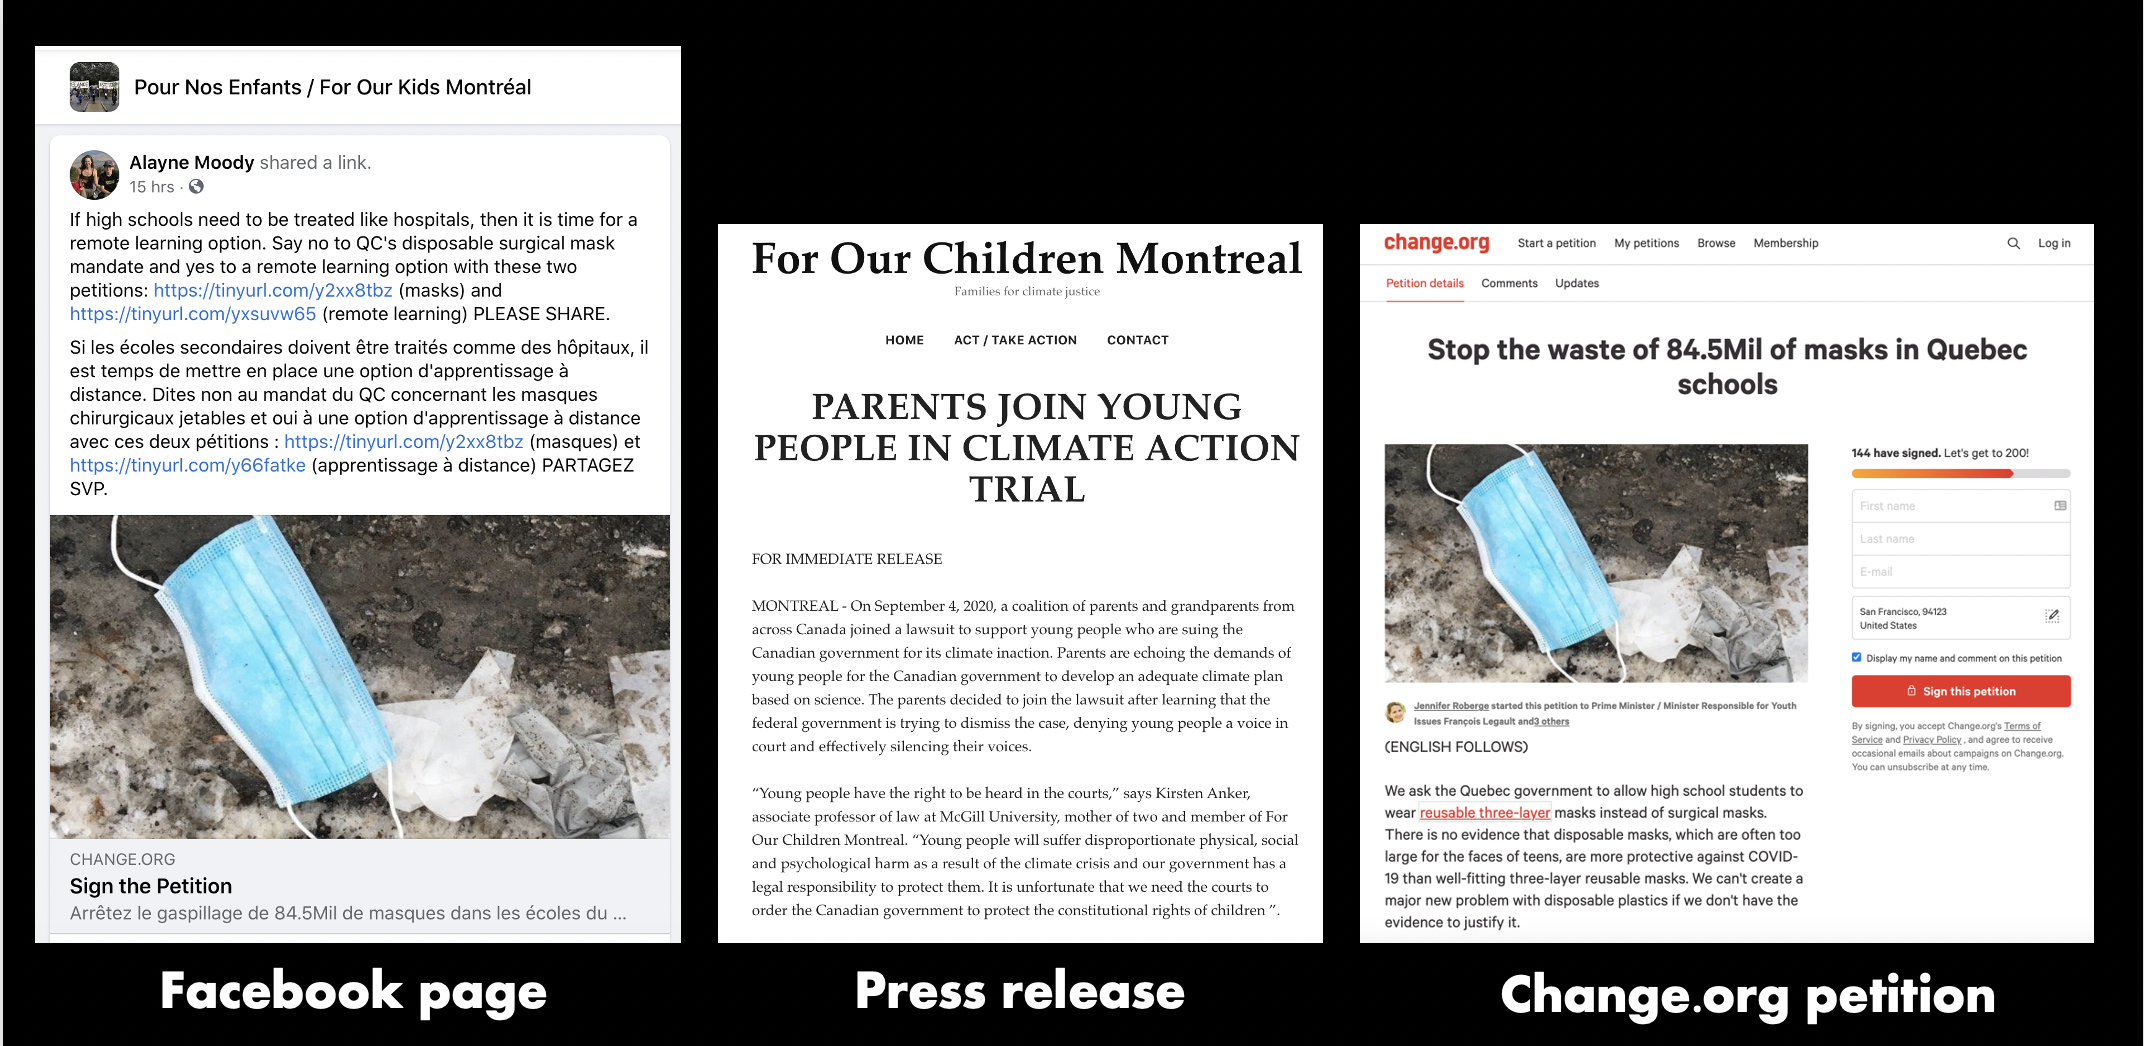 For Our Children created a Facebook Page, press release and Change.org petition drive to collect signatures.